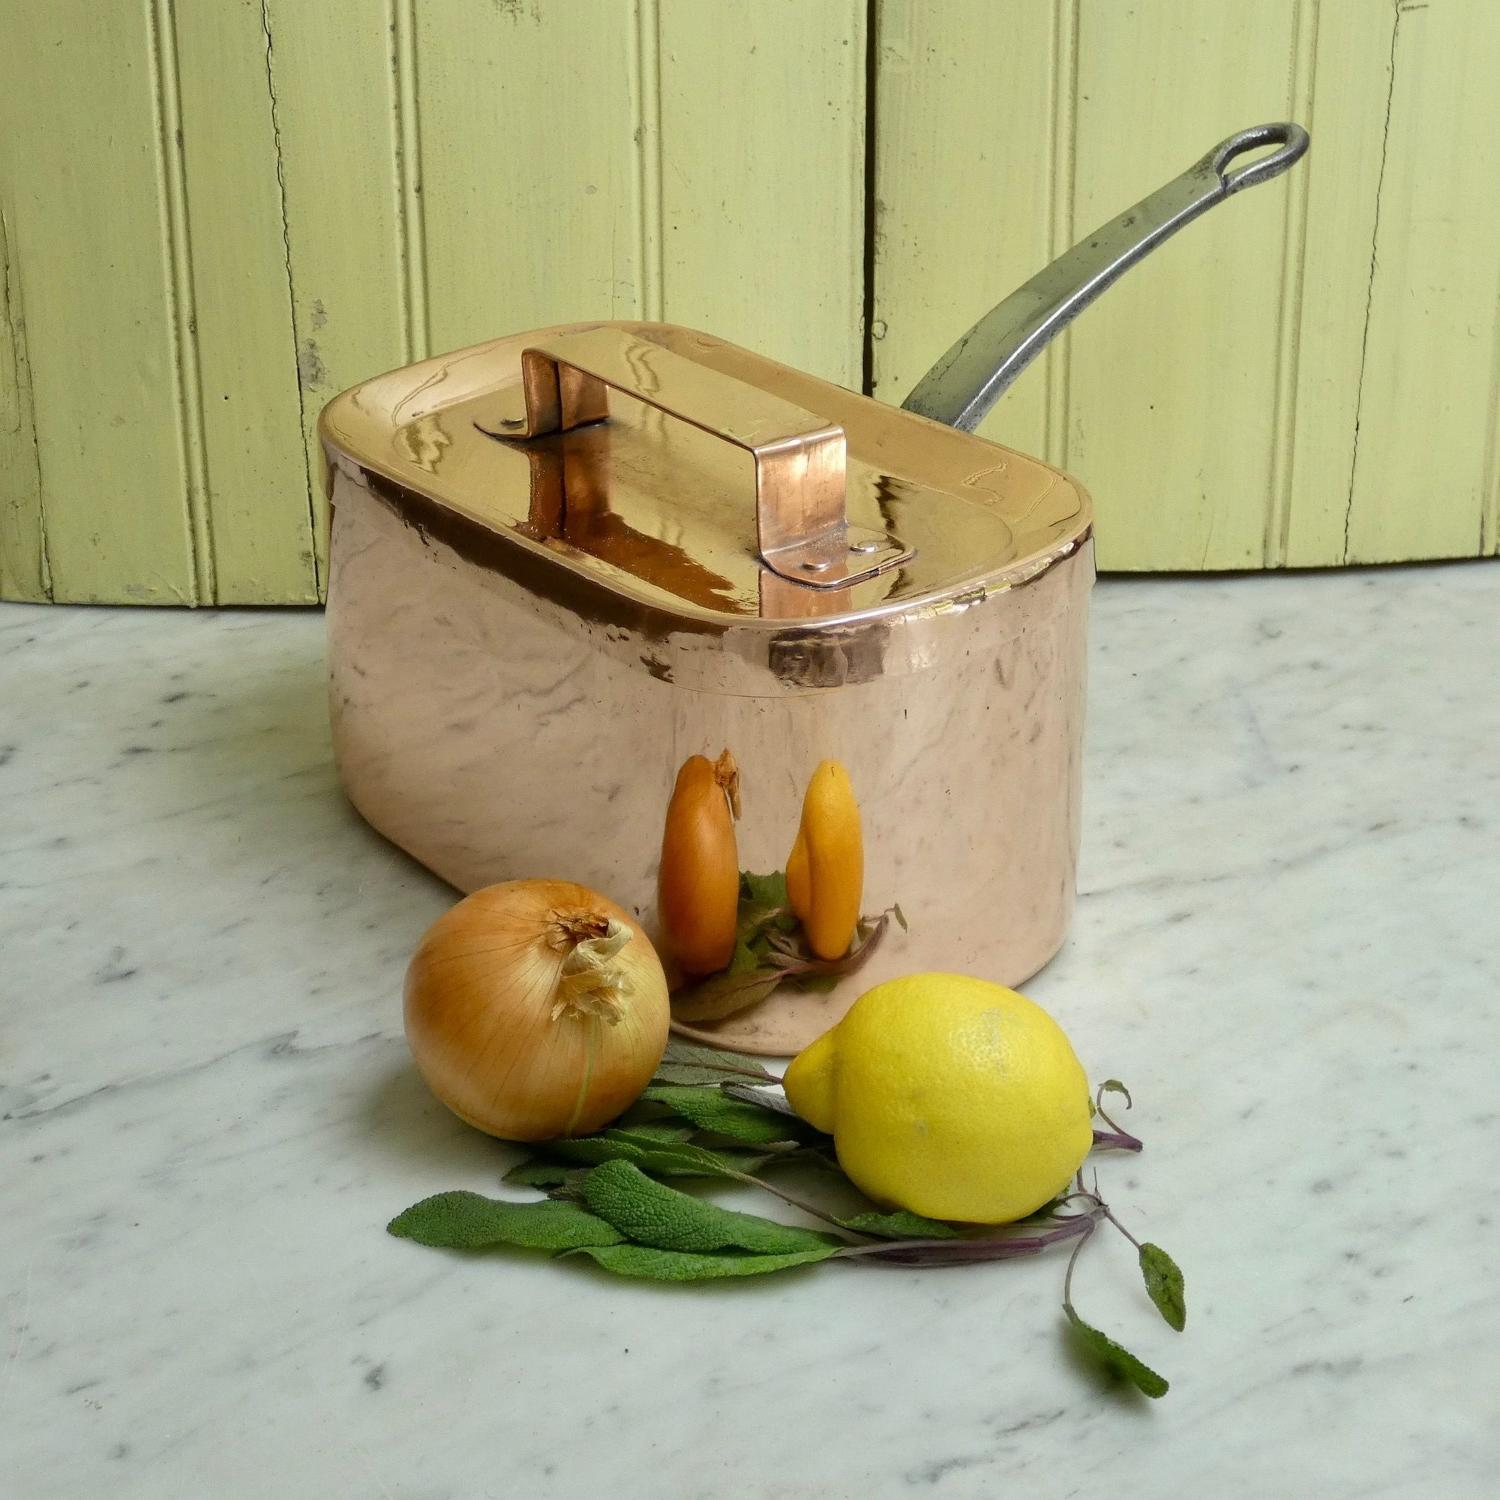 Rectangular copper saucepan